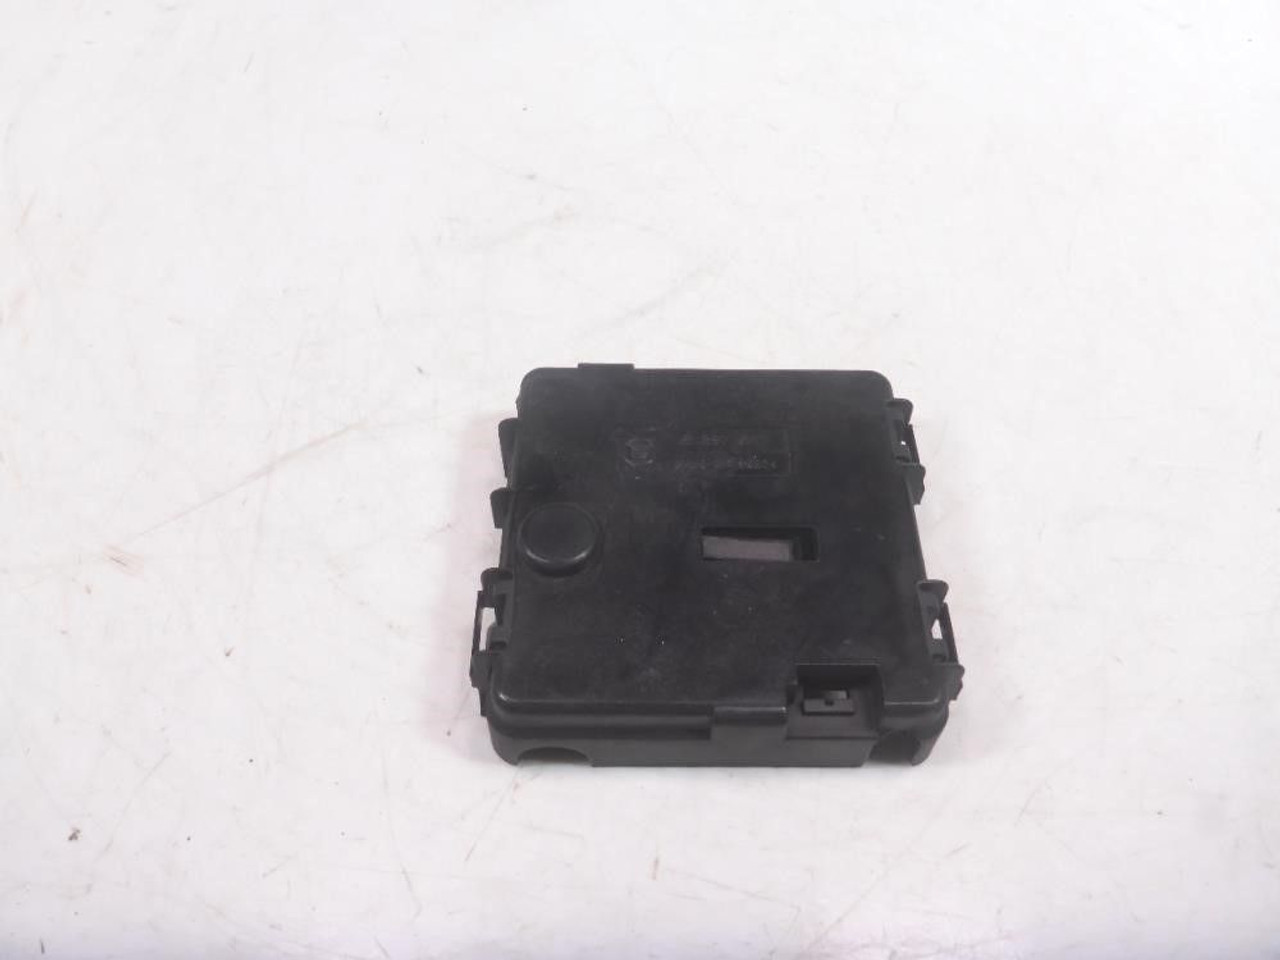 hight resolution of 05 bmw x3 e83 trunk fuse box trop cover 8387547